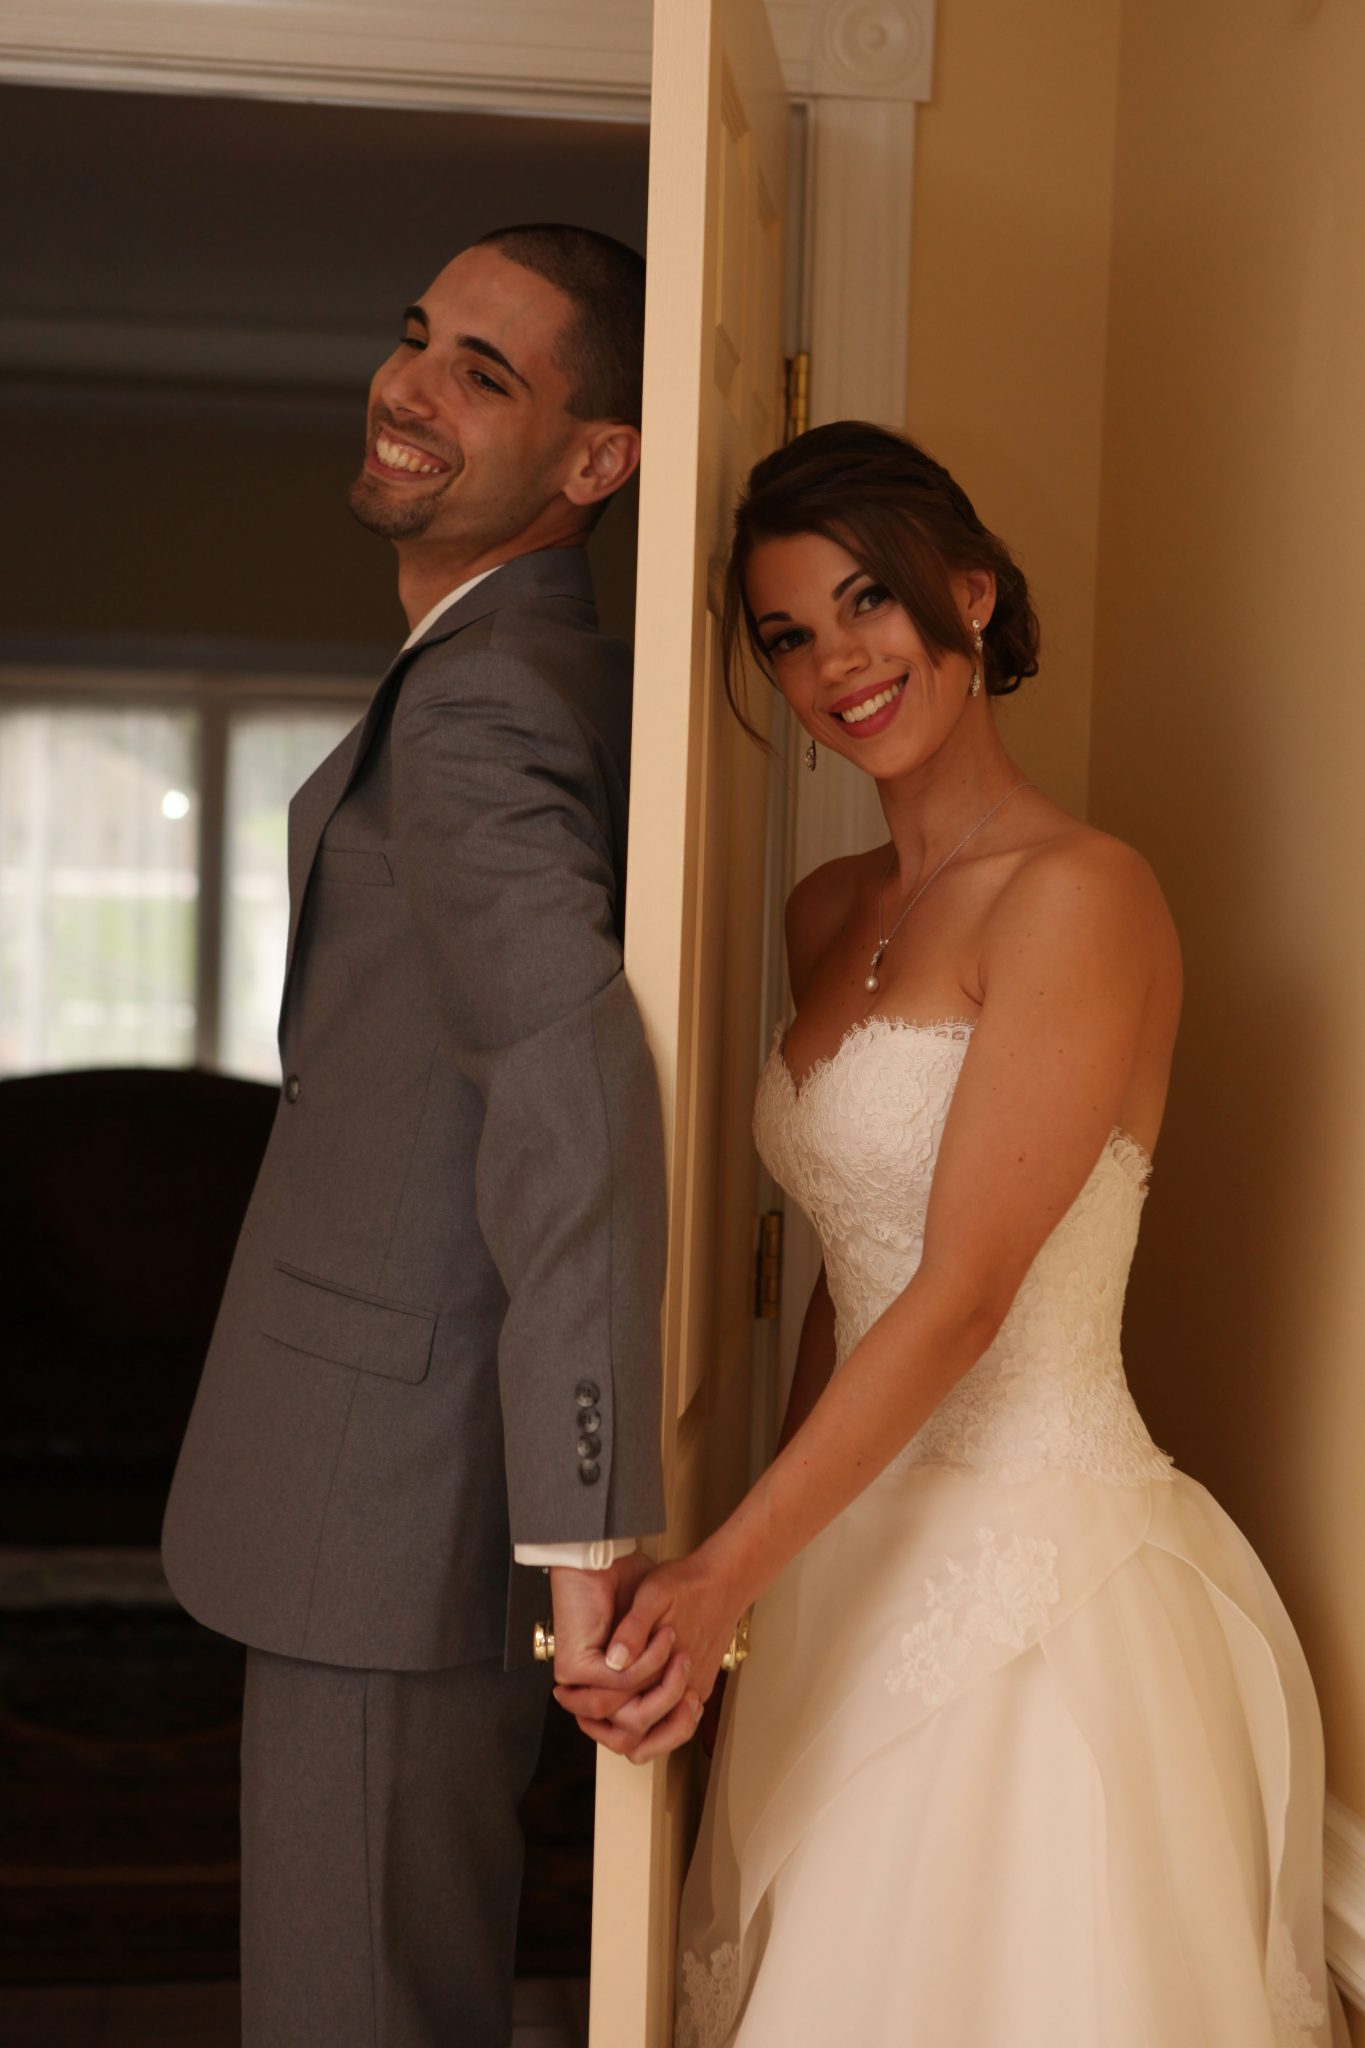 Bride and groom stay on opposite sides of door before wedding ceremony in this fun photo.